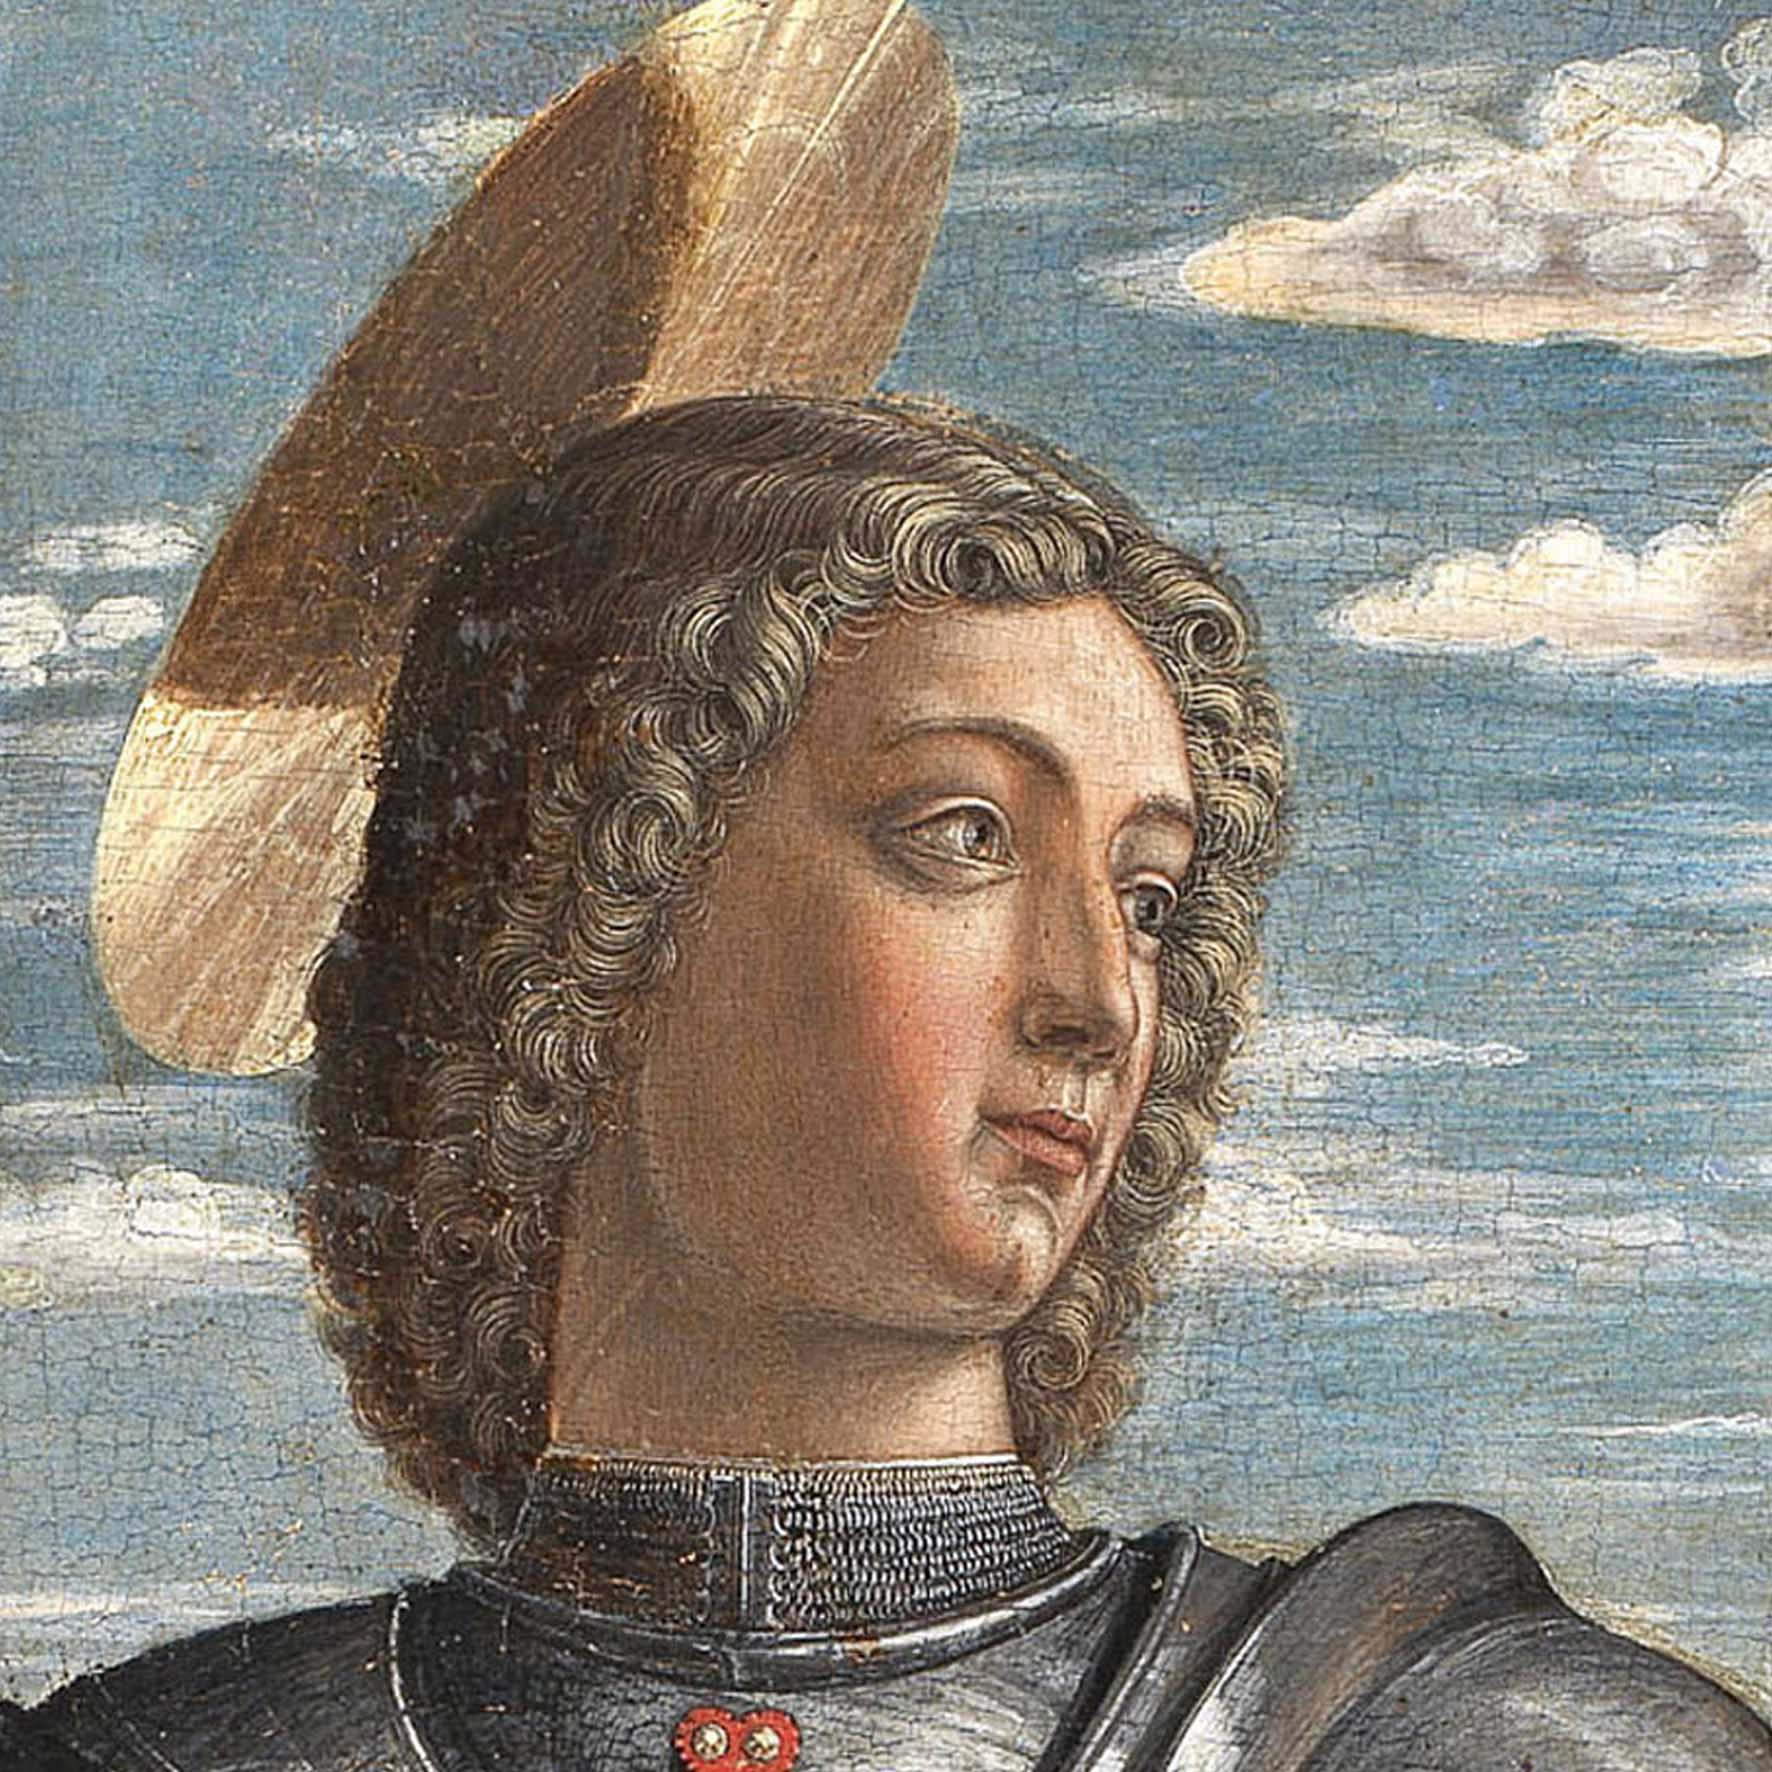 MANTEGNA'S SAINT GEORGE